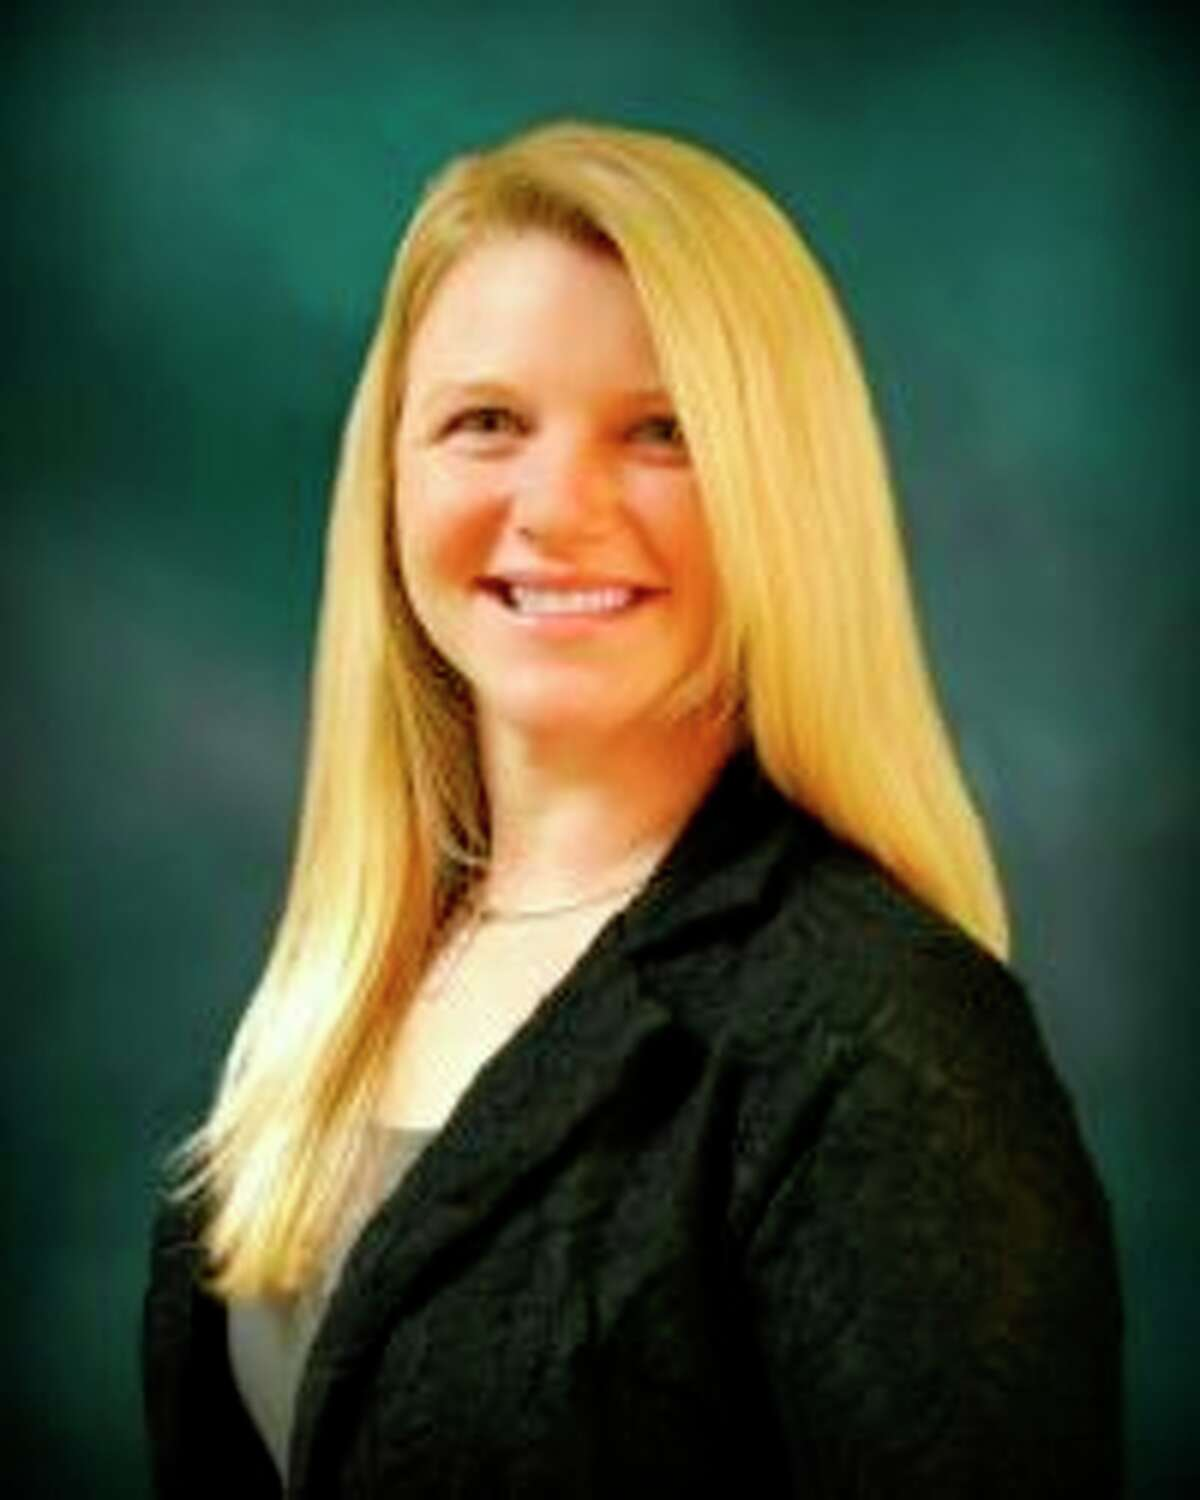 Evart city manager Sarah Dvoracek has resigned her position effective Aug.30. Richard Lewis of Traverse City will serve as interim city manager. (Herald Review file photo)